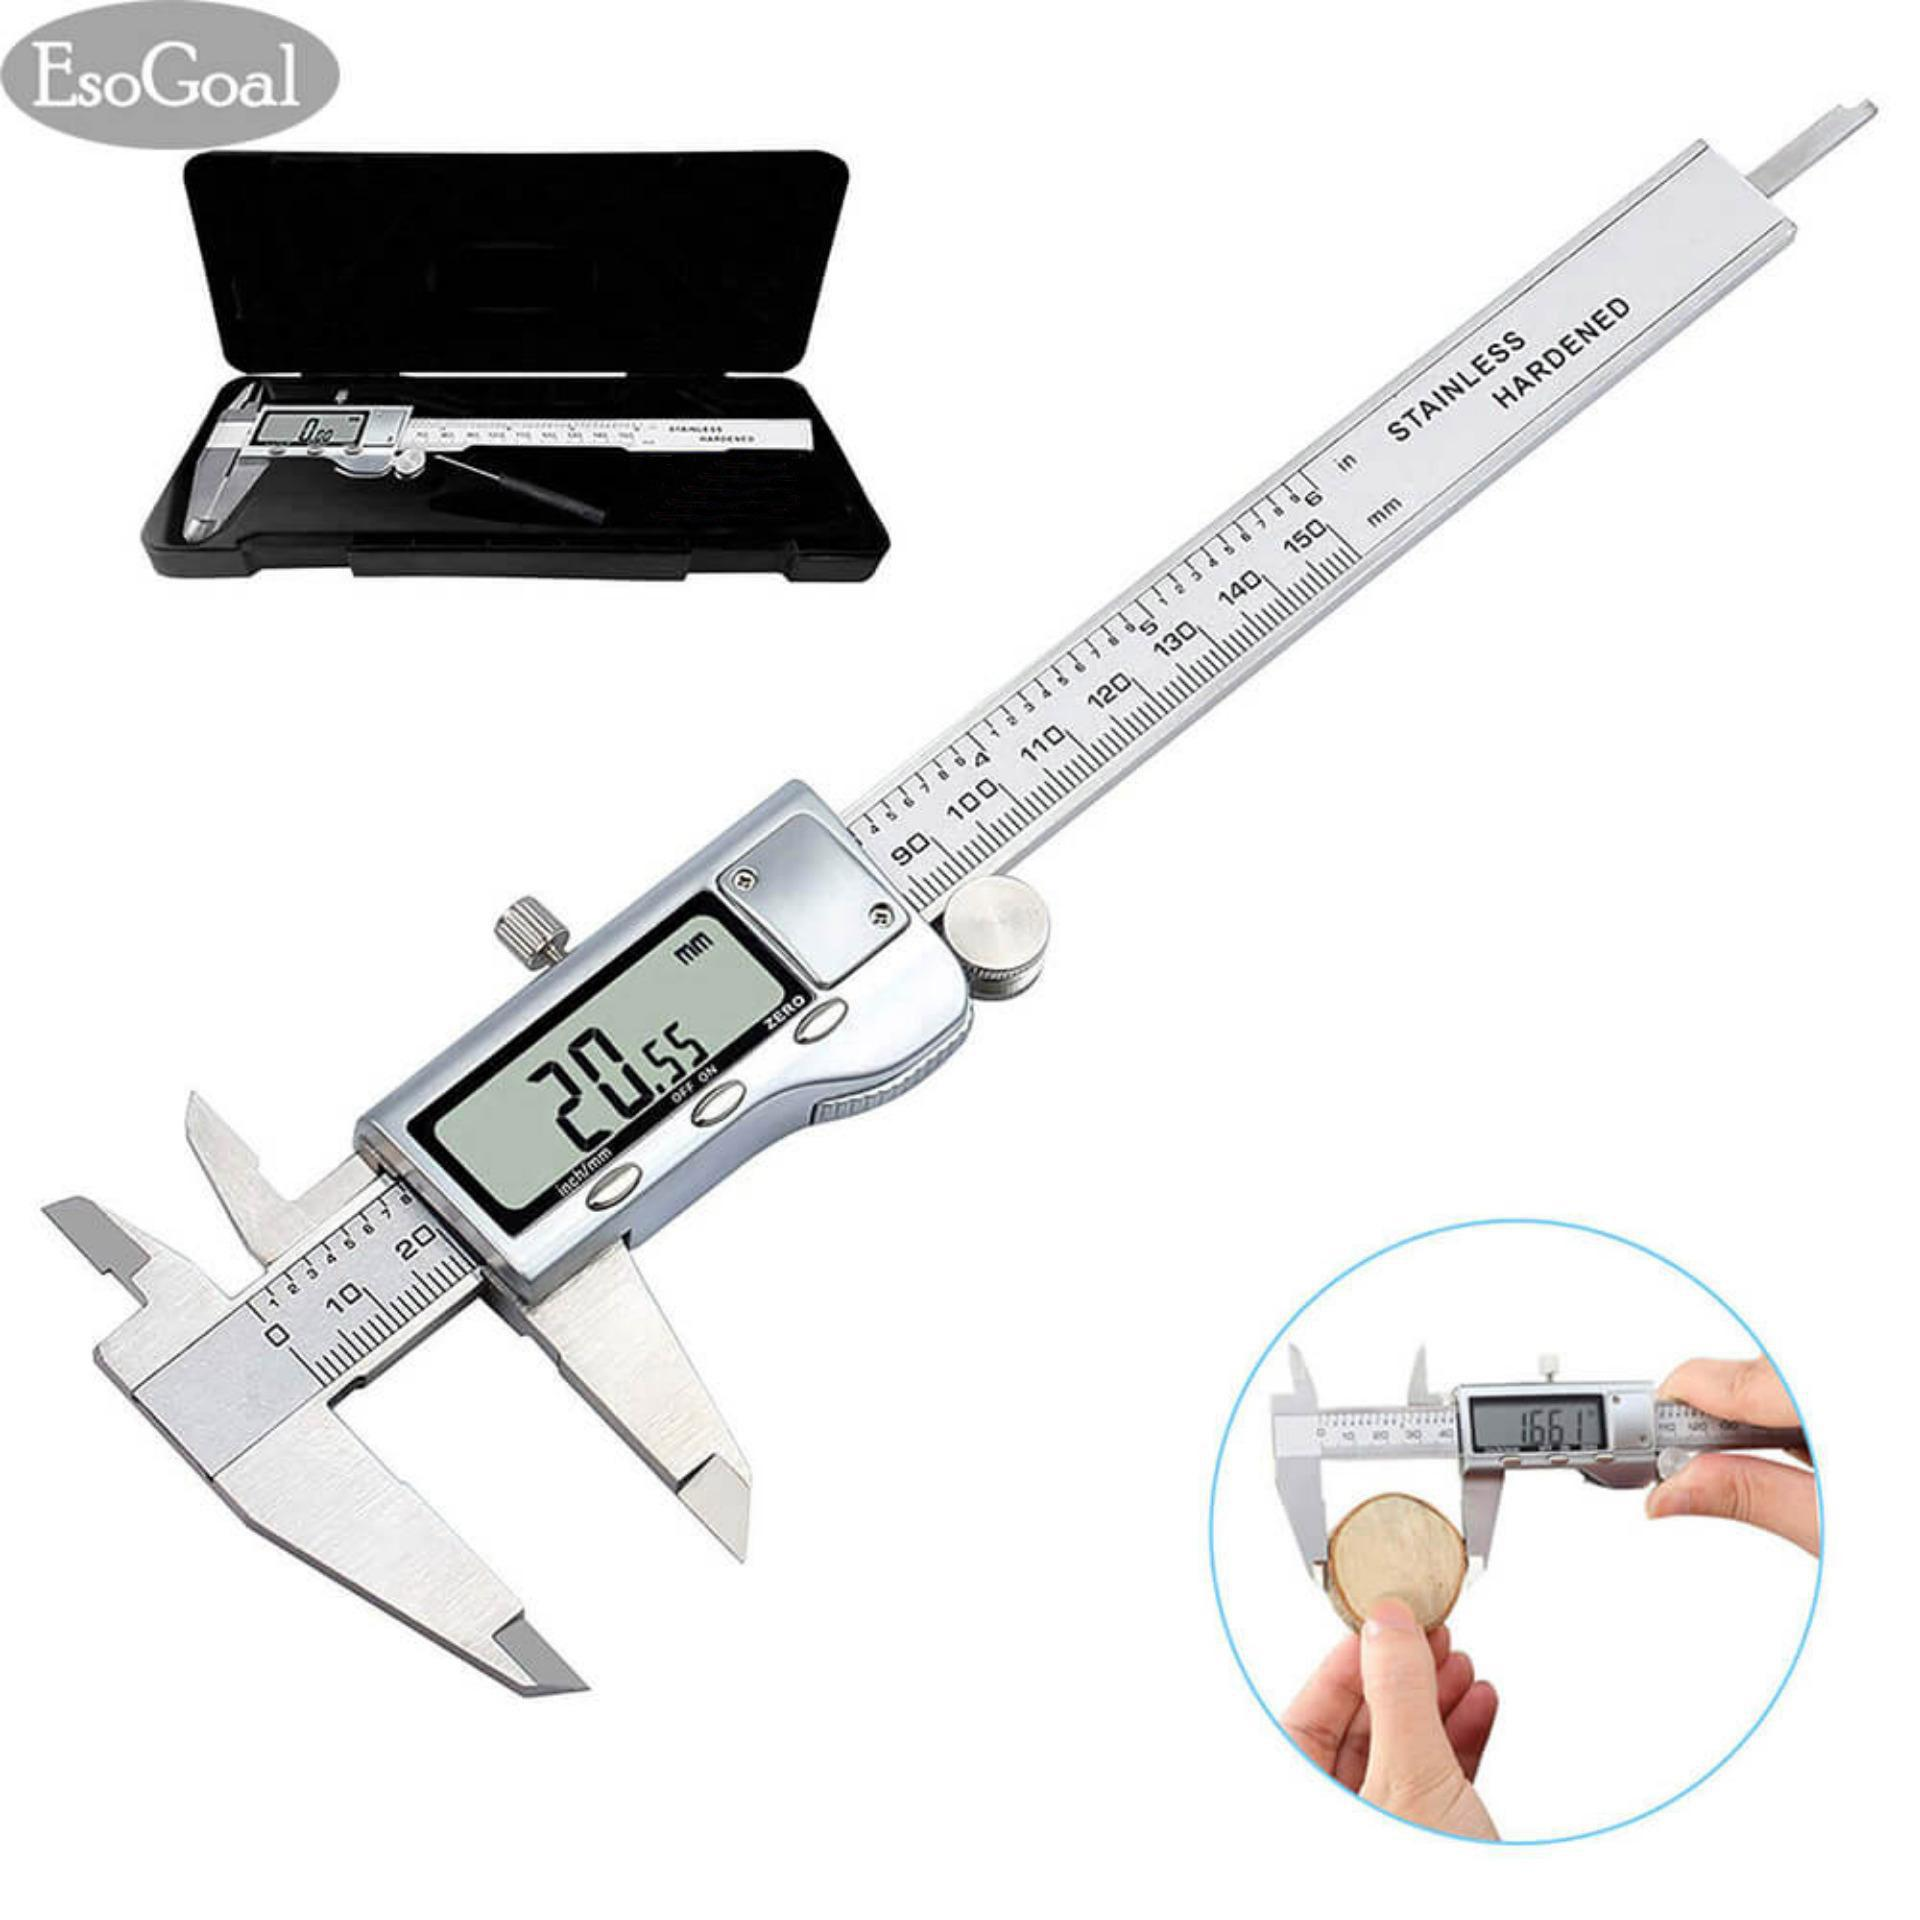 Esogoal Digital Caliper Measuring Tool Stainless Steel Inch Mm, Led Screen, Precision 0.0005/0.01mm Measuring Inside, Outside, Depth Accuracy - Intl By Esogoal.